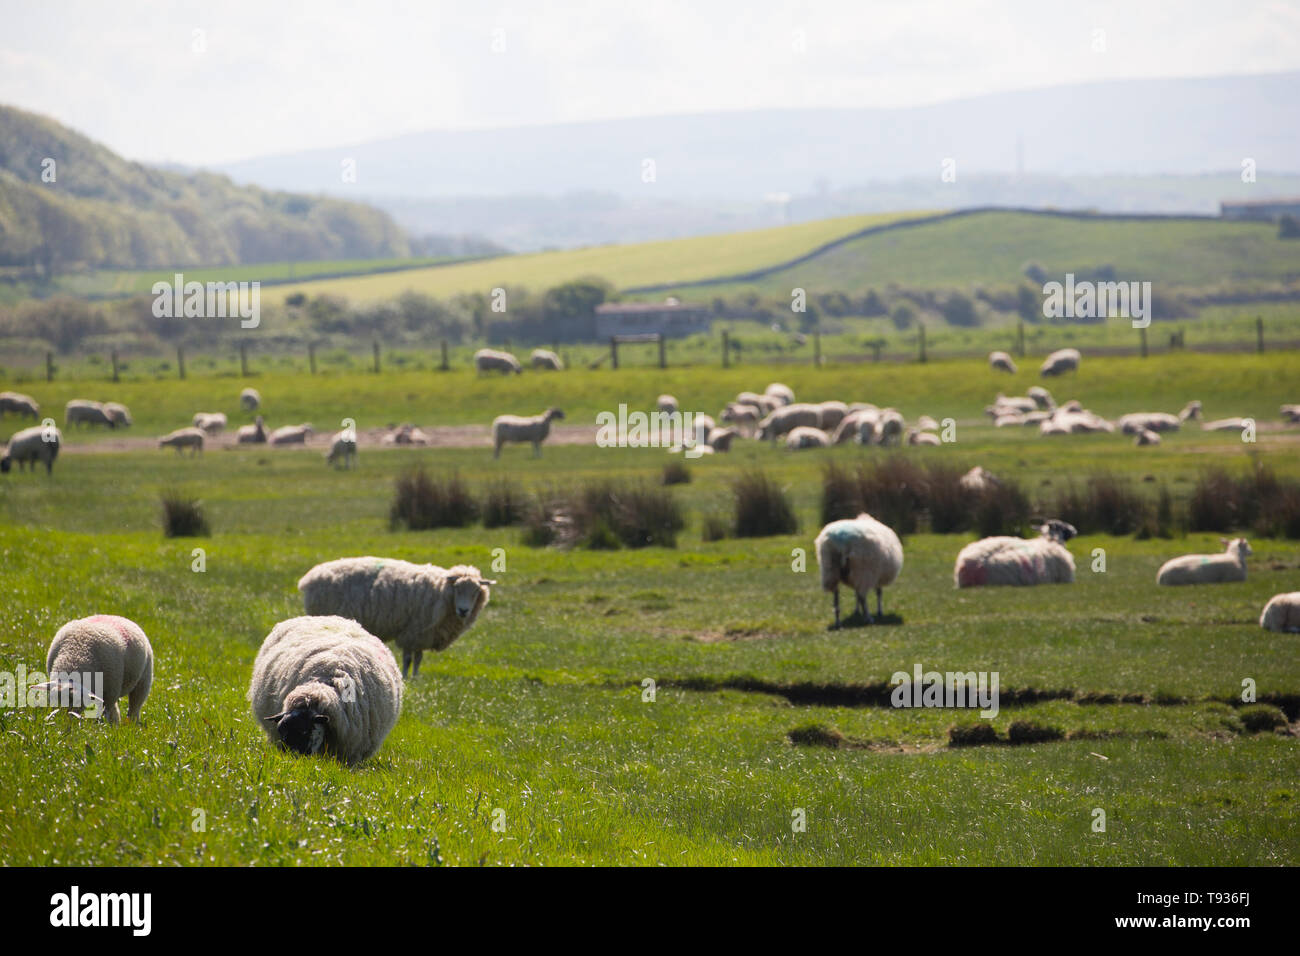 Sheep and their lambs grazing on tidal salt marshes close to Jenny Brown's Point near the village of Silverdale on the edge of Morecambe Bay. Lancashi - Stock Image